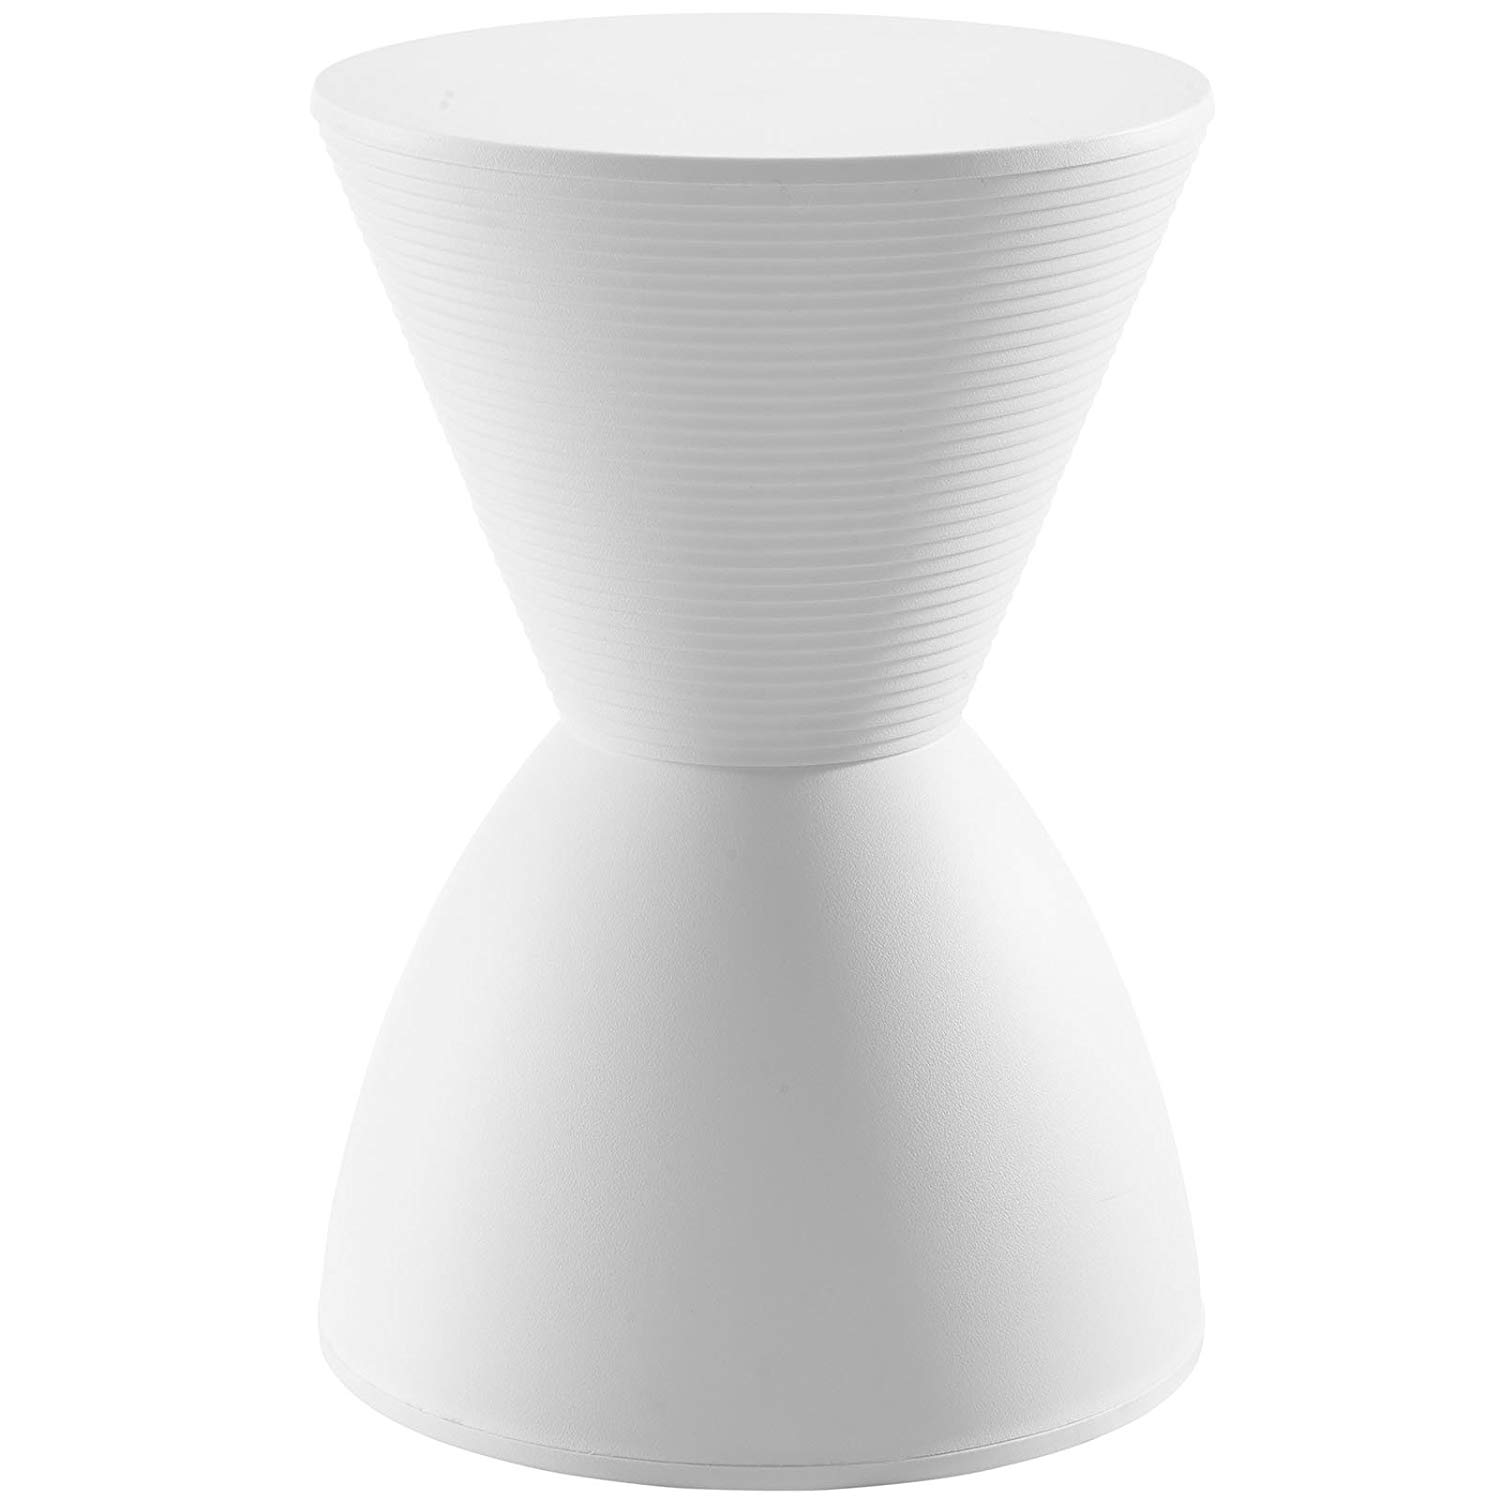 modway haste contemporary modern hourglass accent stool qbvqjl white corner table kitchen dining pier one cushions clearance pottery barn bedside magnetic lamp marble coffee